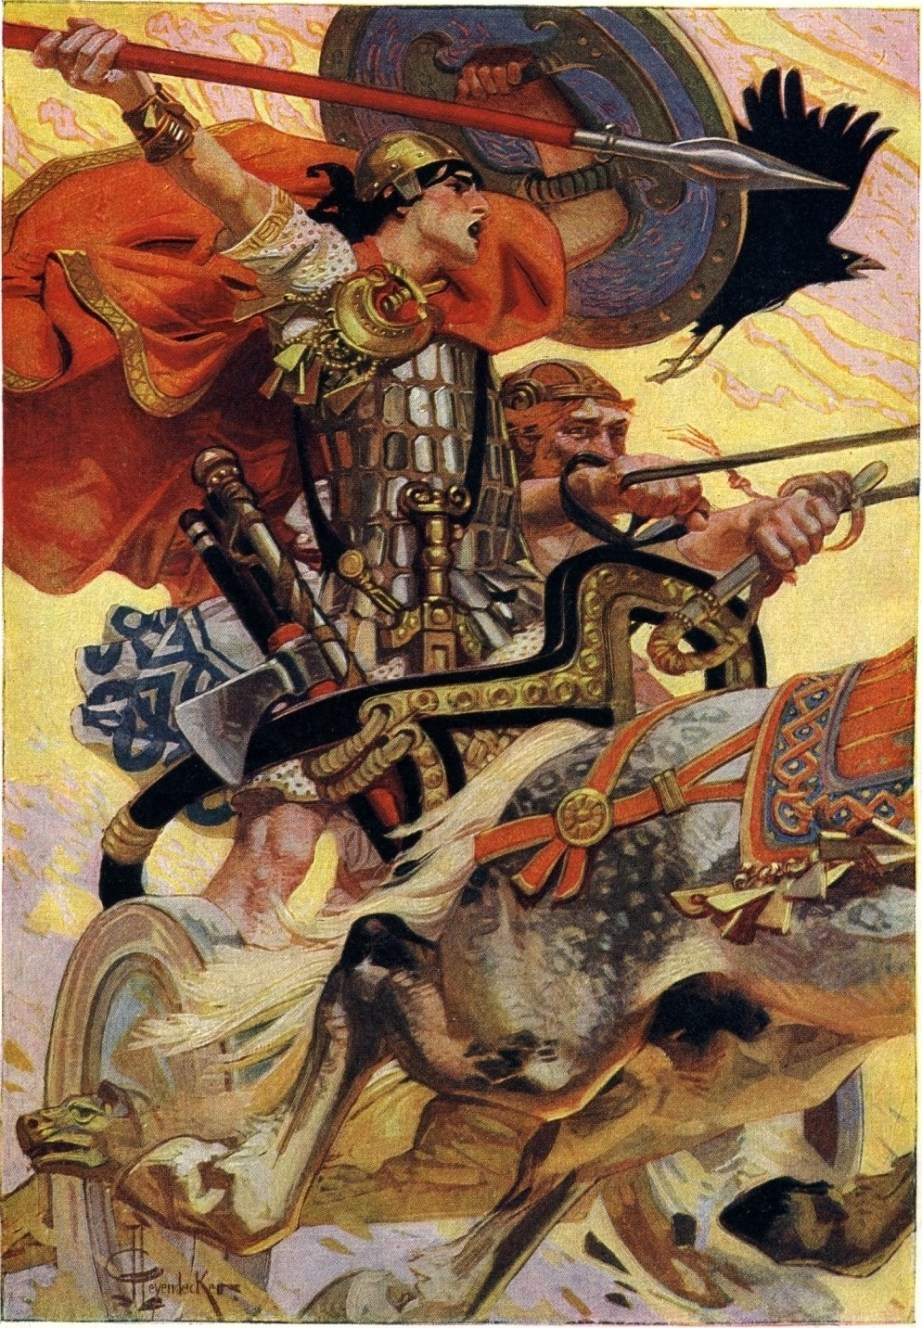 Cú Chulainn riding his chariot into battle, 1911, by J-C Leyendecker